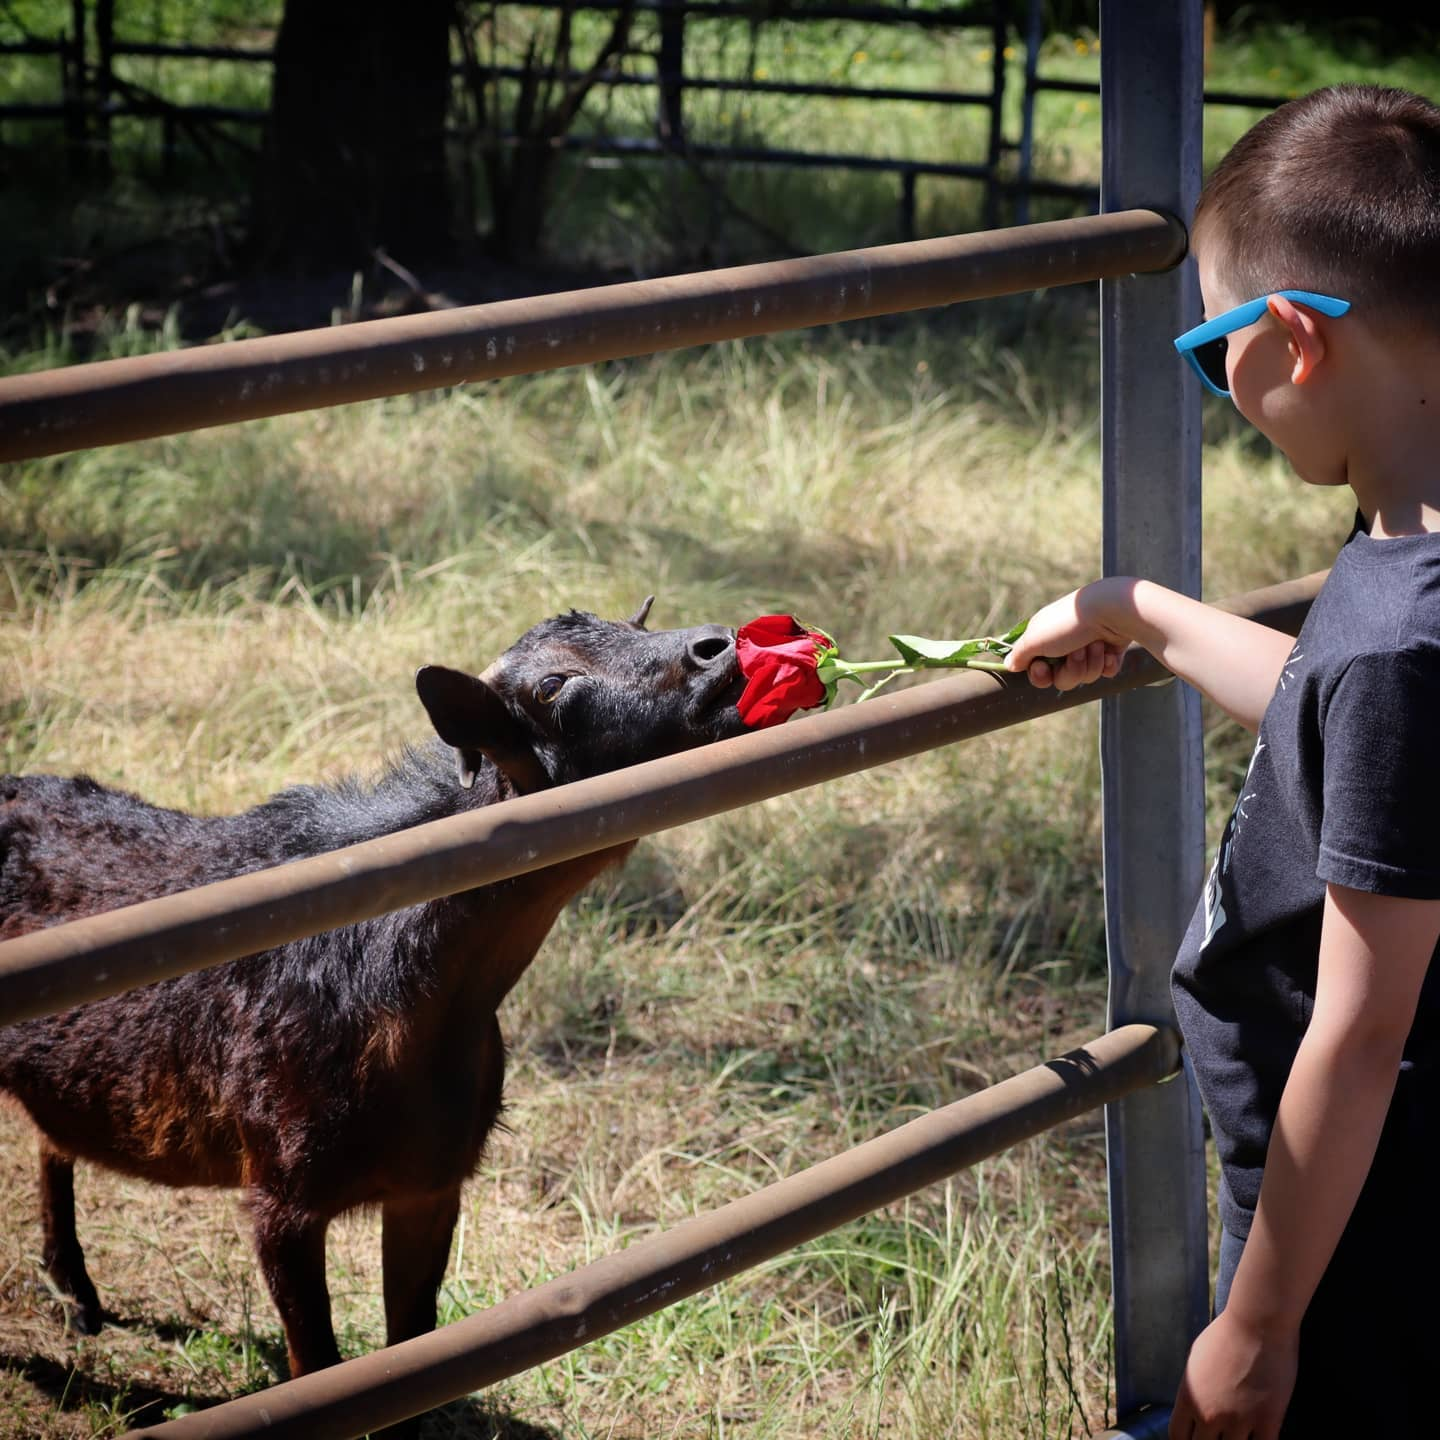 Critically endangered San Clemente Island Goat smells red flower held by child